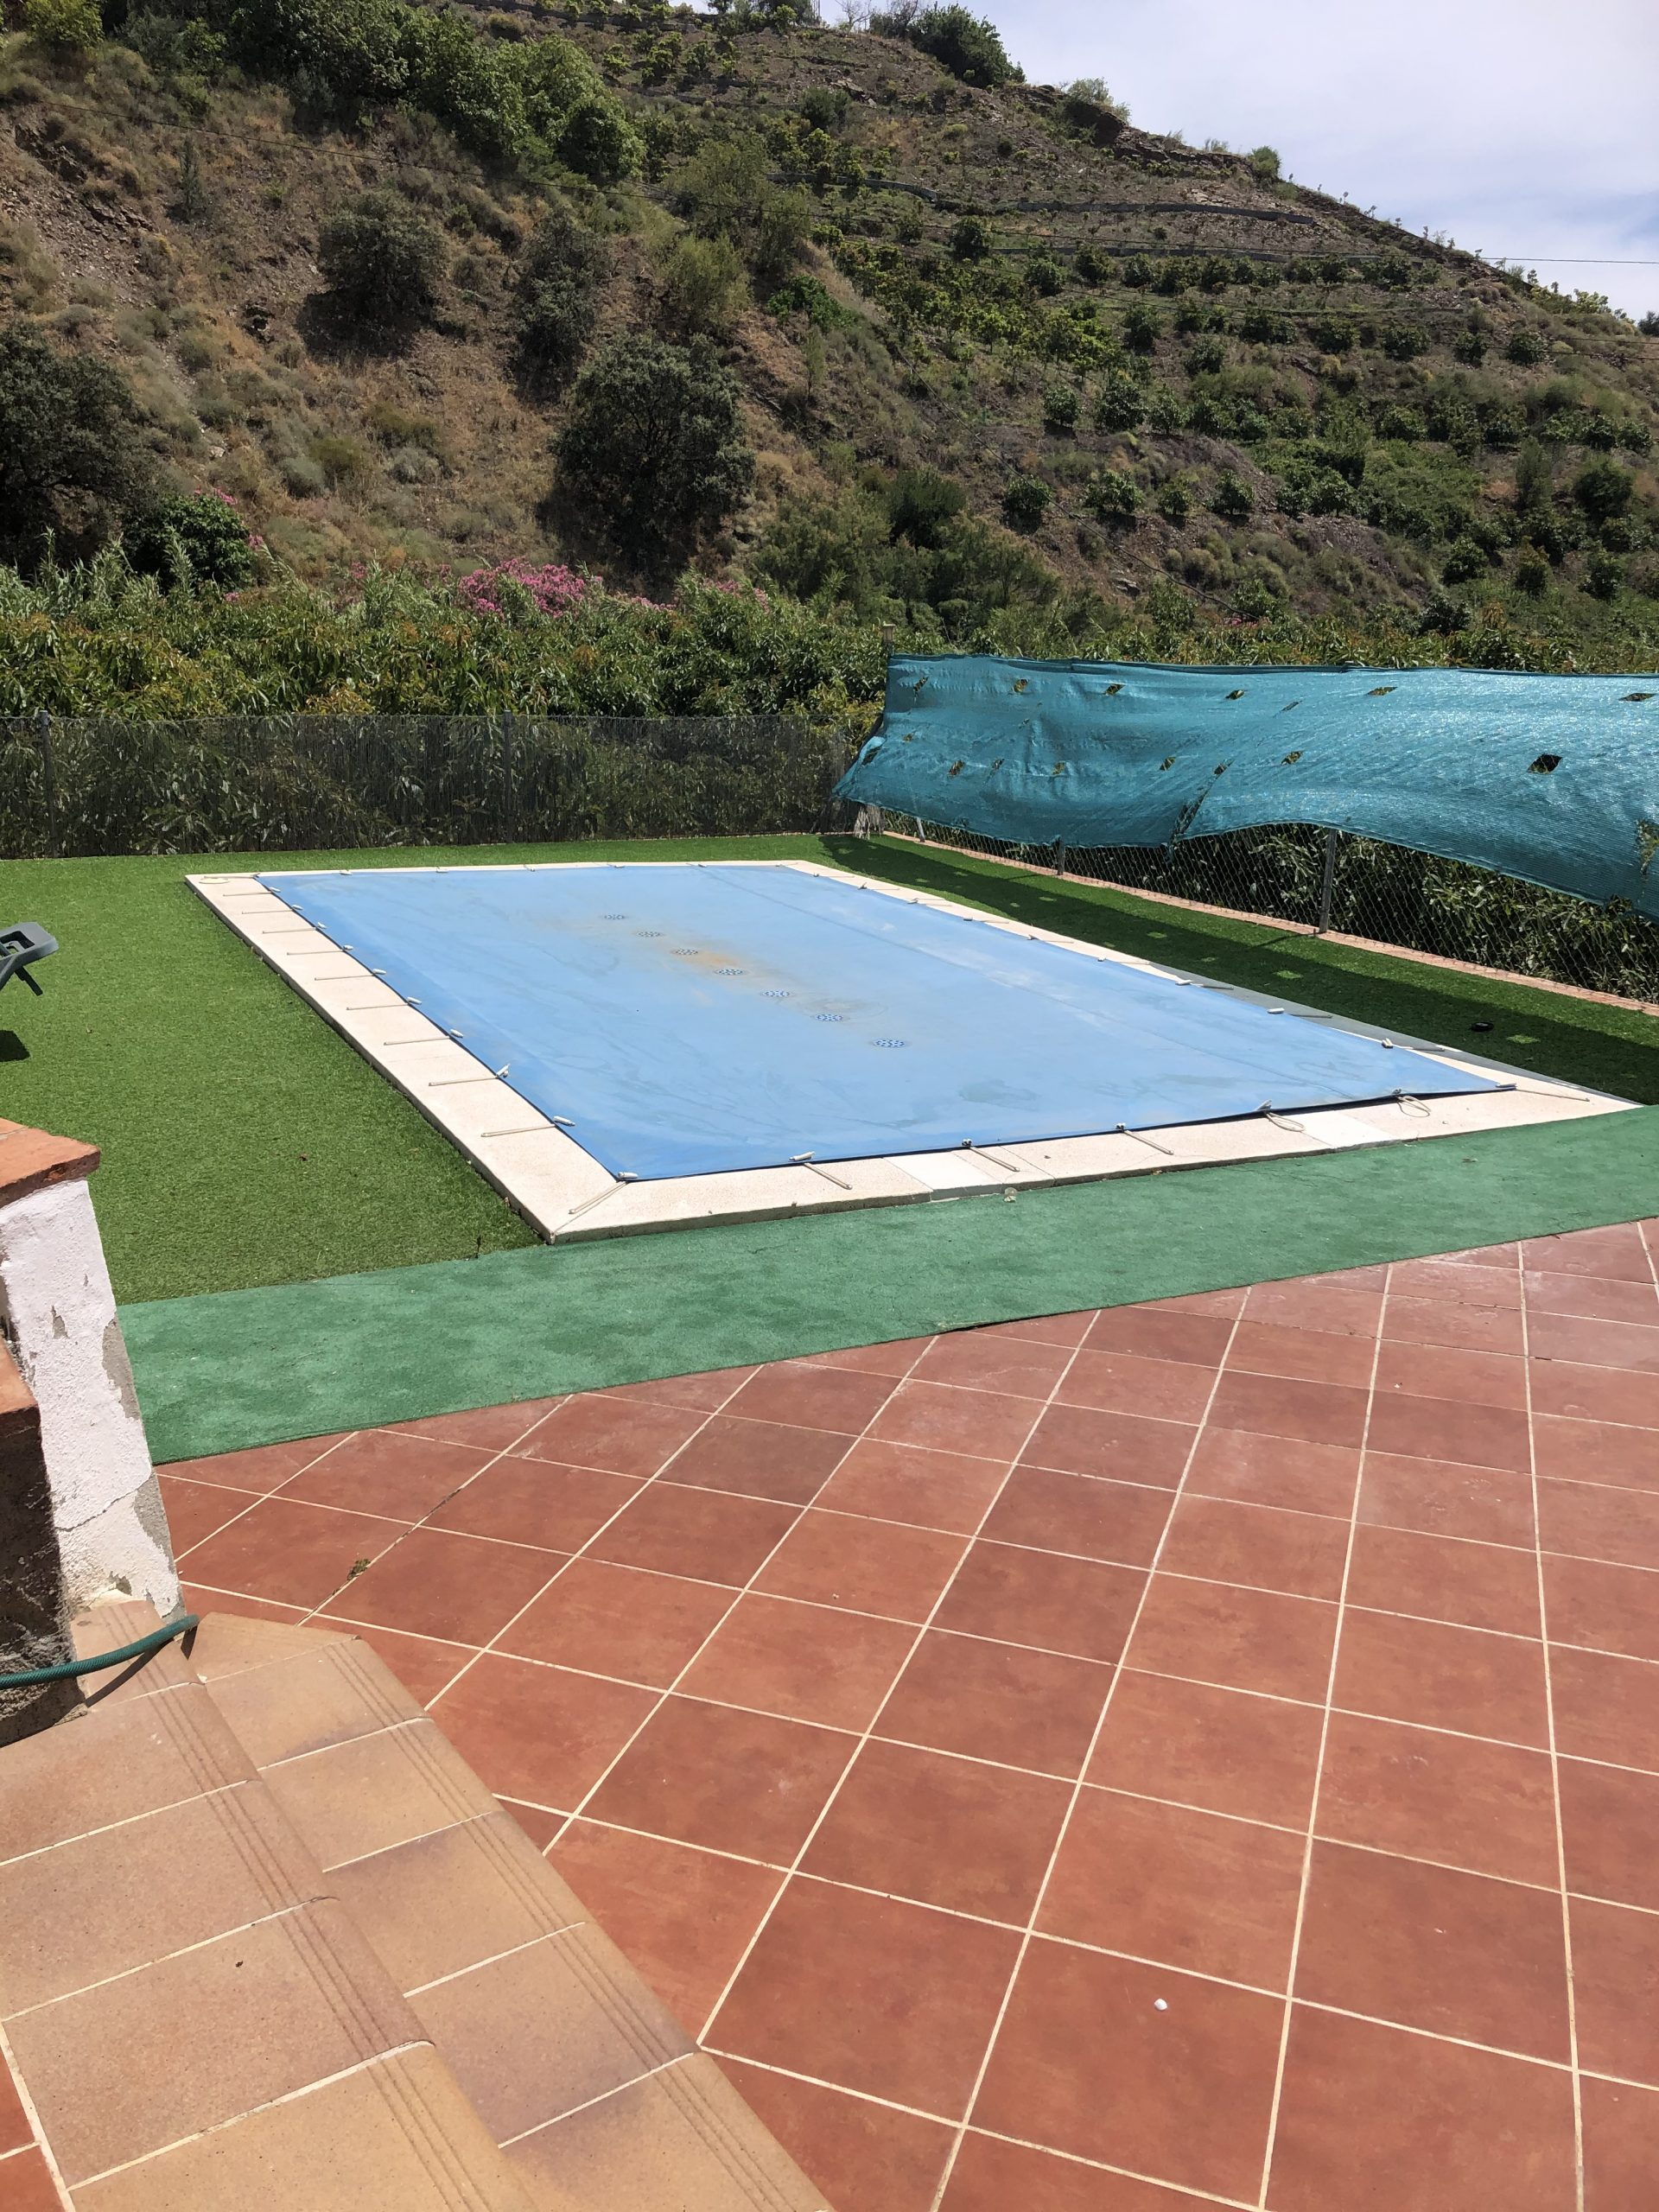 FOR RENT – 3/4 BED COUNTRY HOUSE – SALTO DEL NEGRO